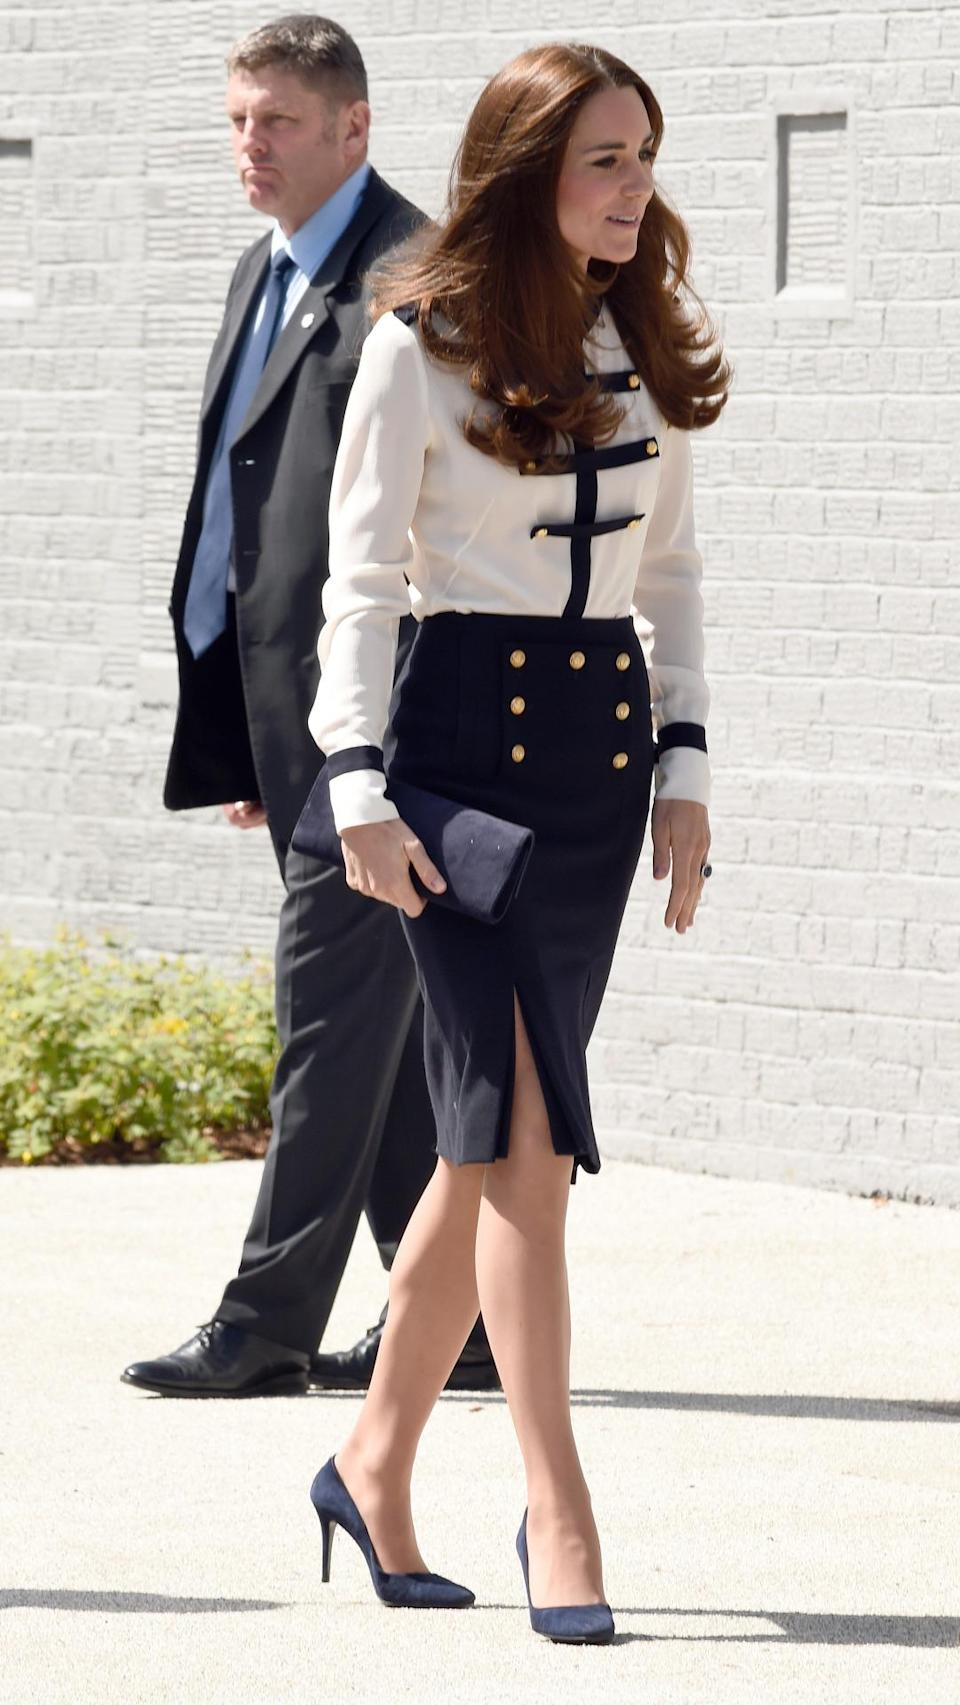 <p>The Duchess visited Bletchley Park in Alexander McQueen separates featuring a military-inspired shirt and slitted skirt. Kate accessorised with a blue suede Stuart Weitzman bag and matching heels. </p><p><i>[Photo: PA]</i></p>